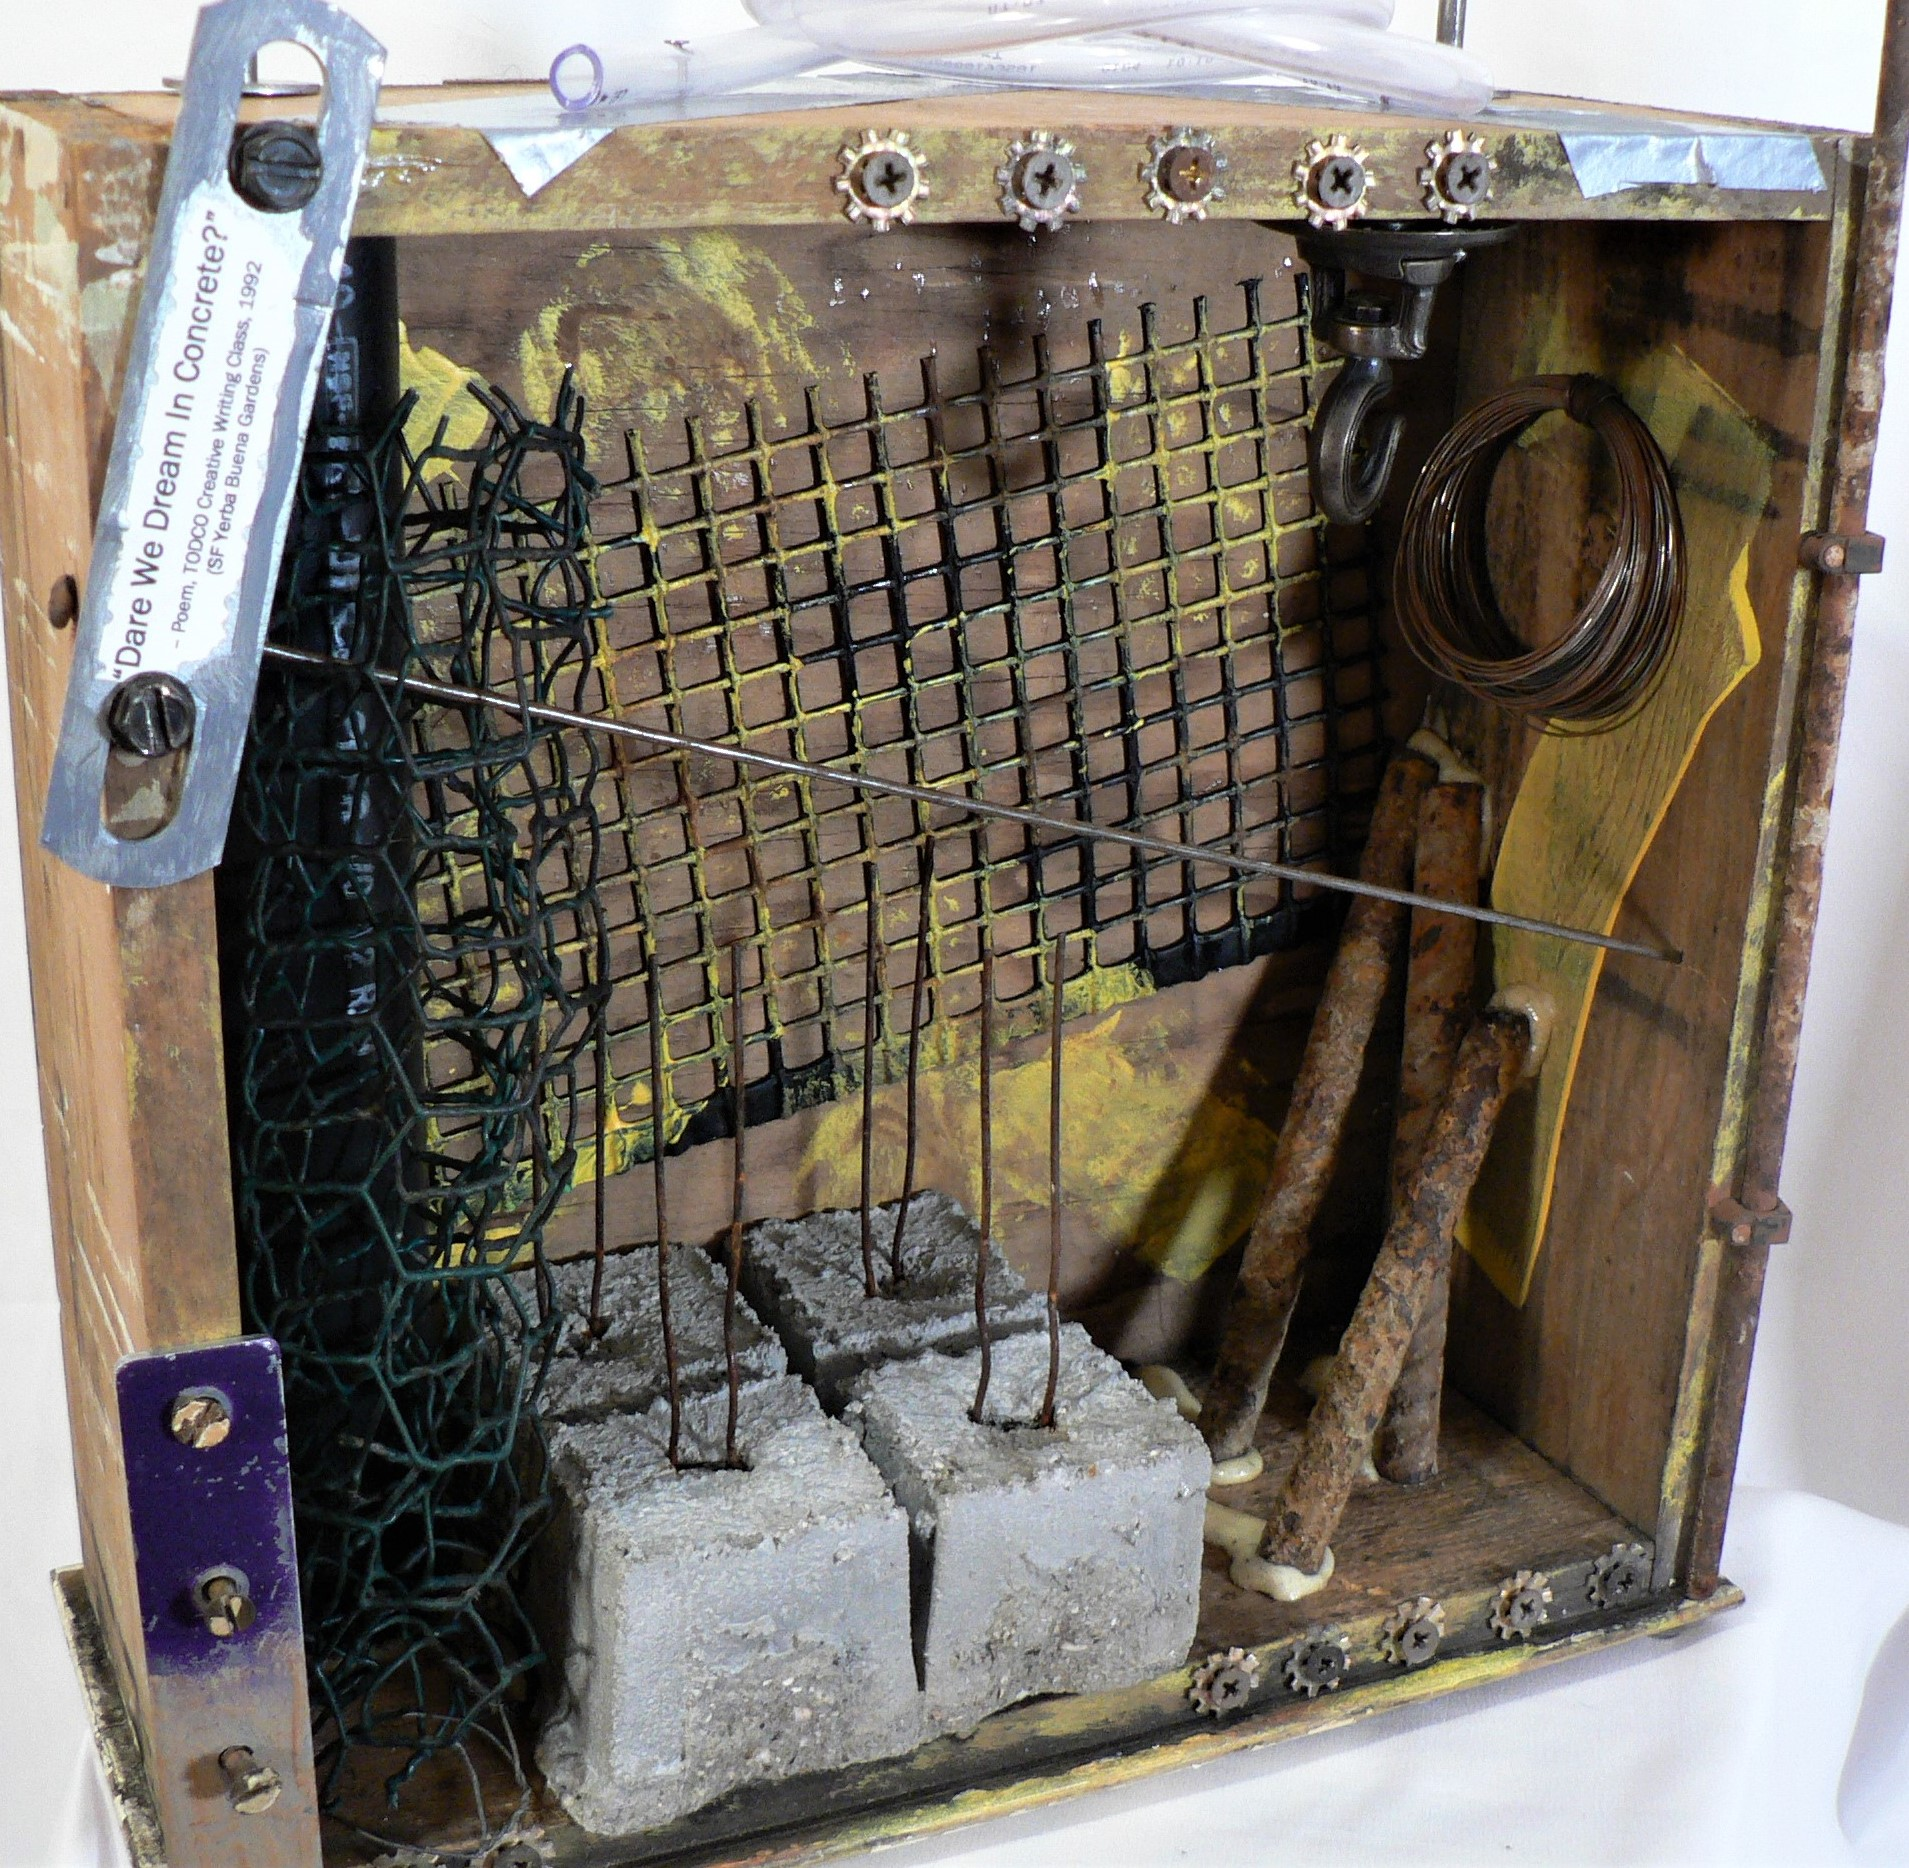 "Constructive Criticism - ""Dare We Dream In Concrete?"" – Poem, TODCO Creative Writing Class, 1992 (SF Yerba Buena Gardens).Materials: Recycled wood drawer; concrete footings; plastic screen; steel wool; metal hardware and screws; plastic tubing; chicken coop wire; metal wire; duct tape; acrylic paint. Dimensions: 19""H x 12""W x 5""D. Created: July 2019.Status: For Sale ($150)"